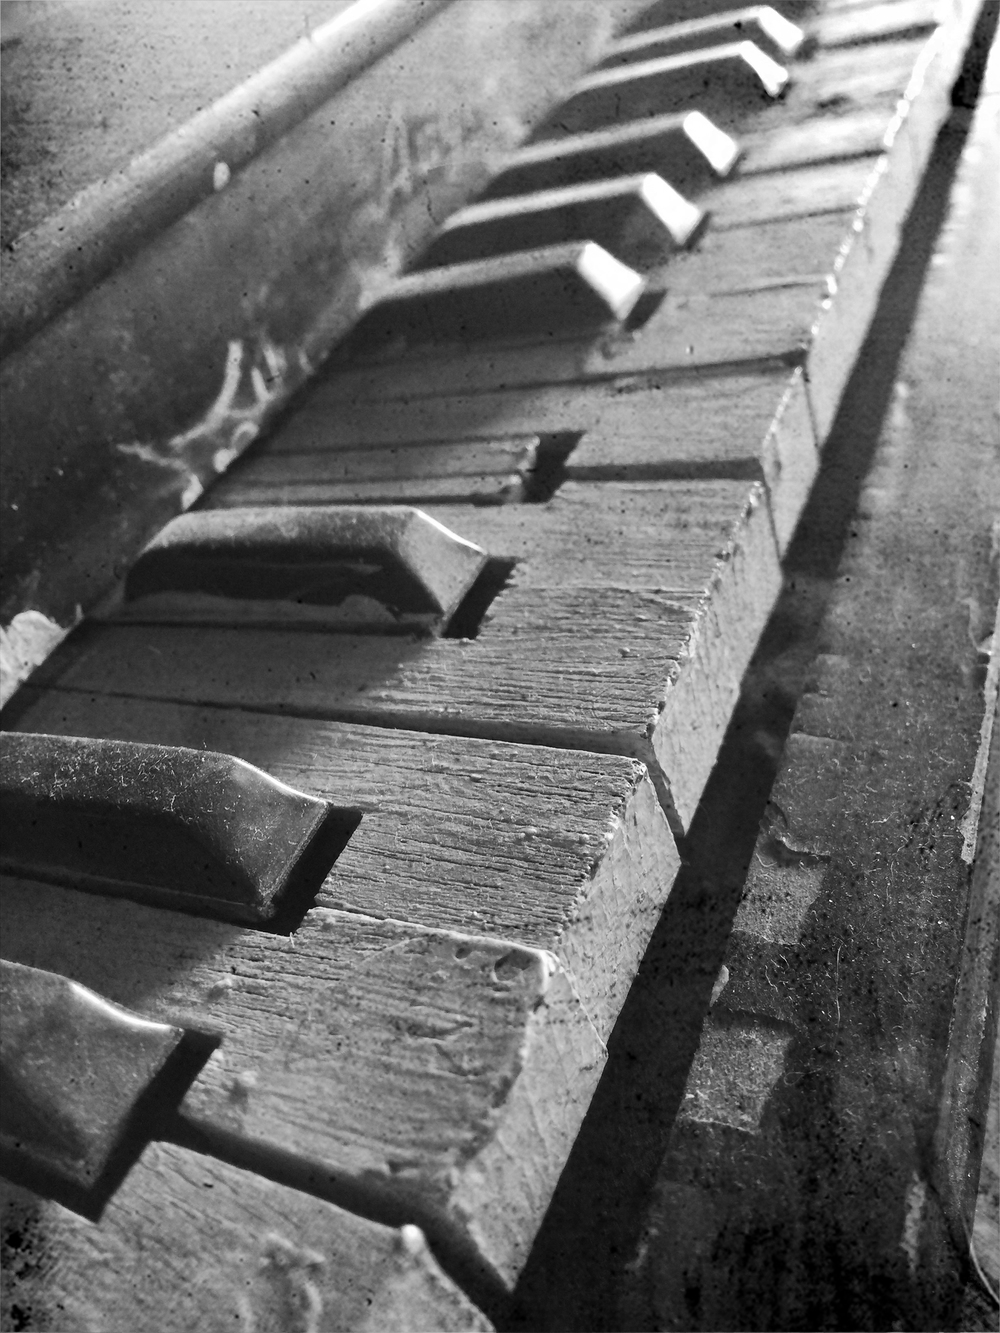 toy pianoIMG_7027.bw.jpg